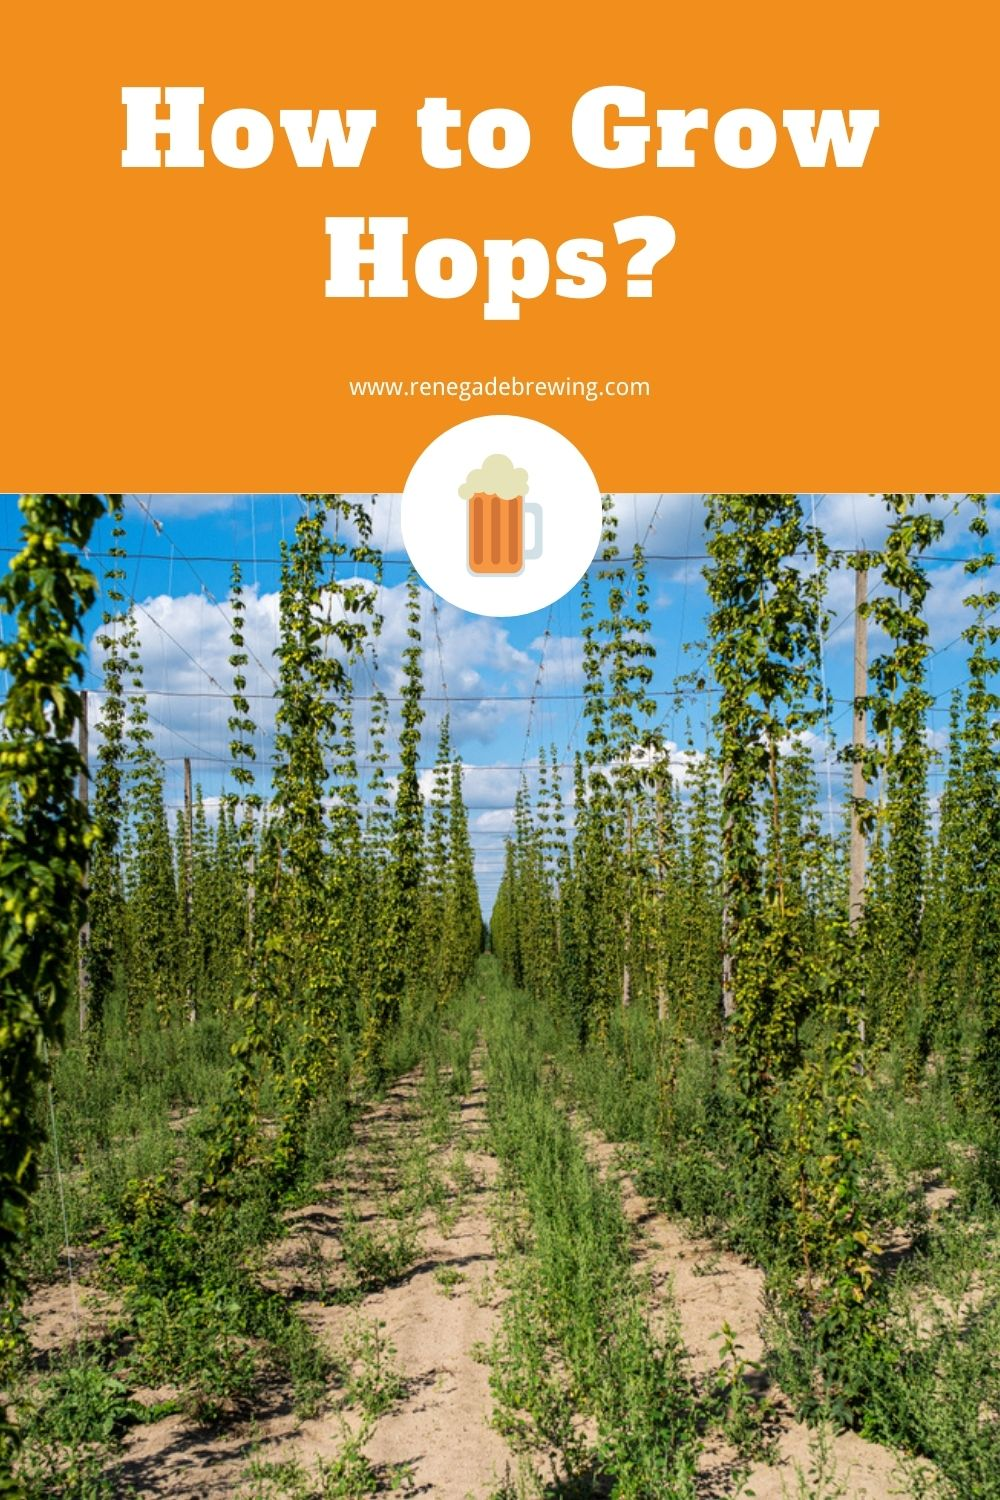 How to Grow Hops (Tips & Complete Guides) 2